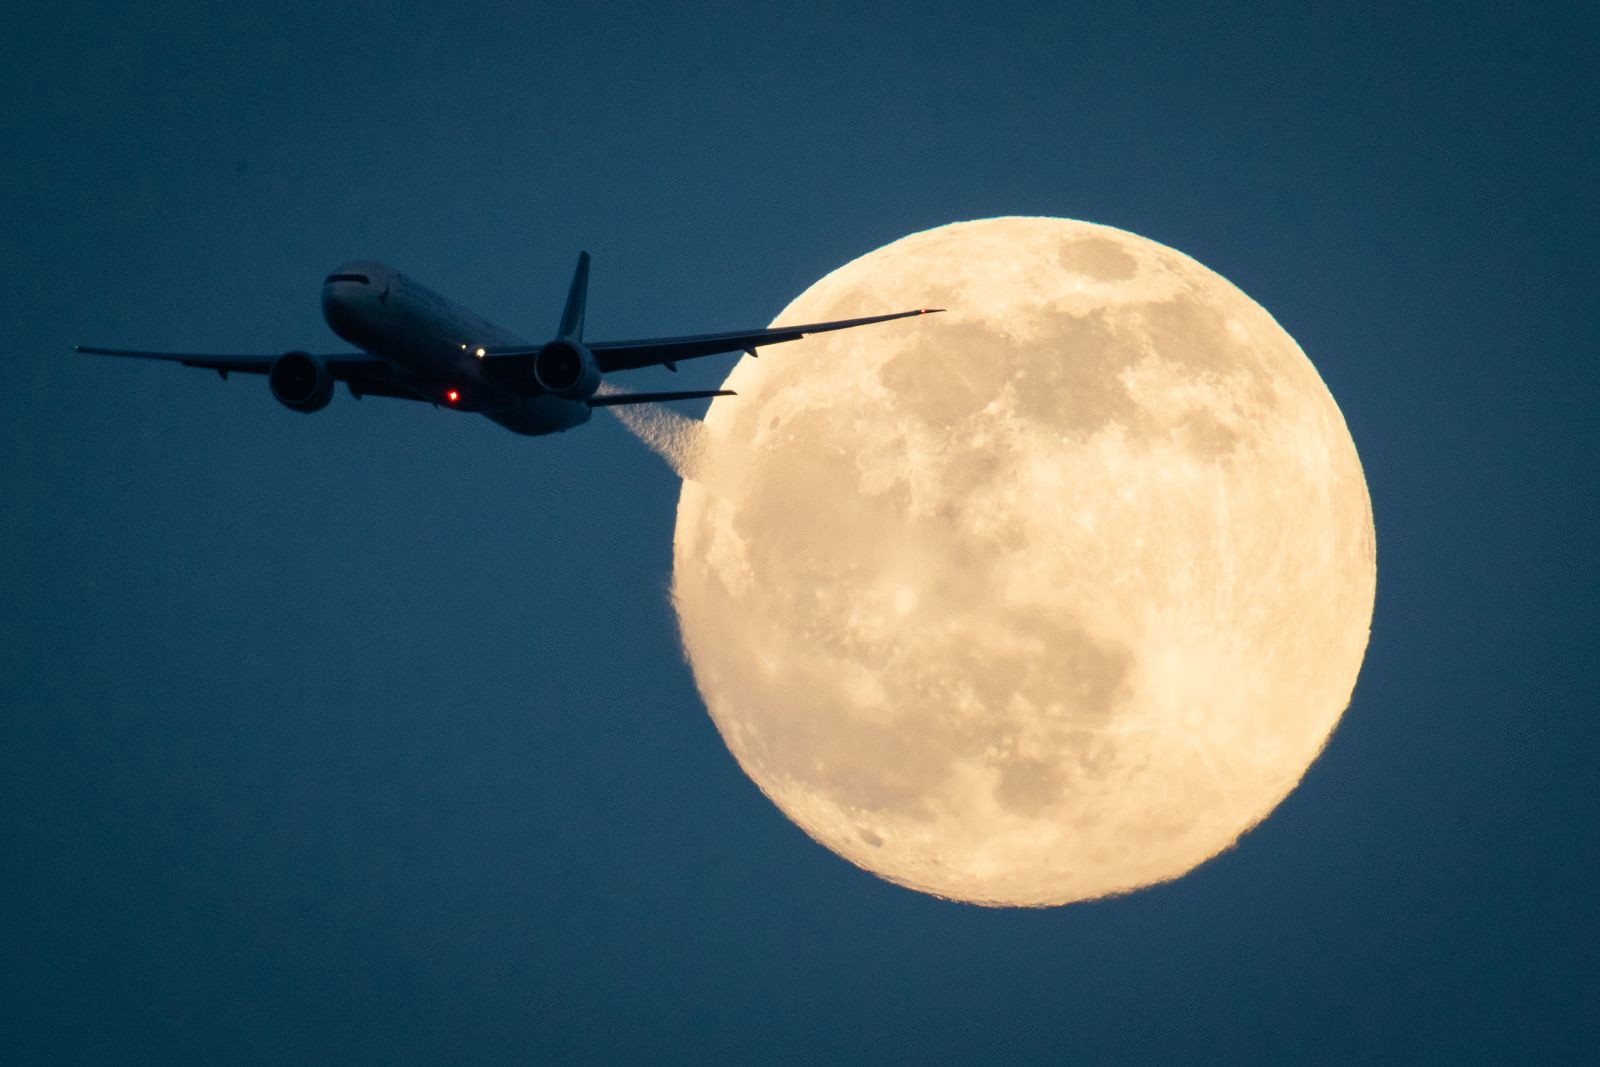 A plane passes in front of the moon as seen from London. Image by Aaron Chown/PA Images via Getty Images